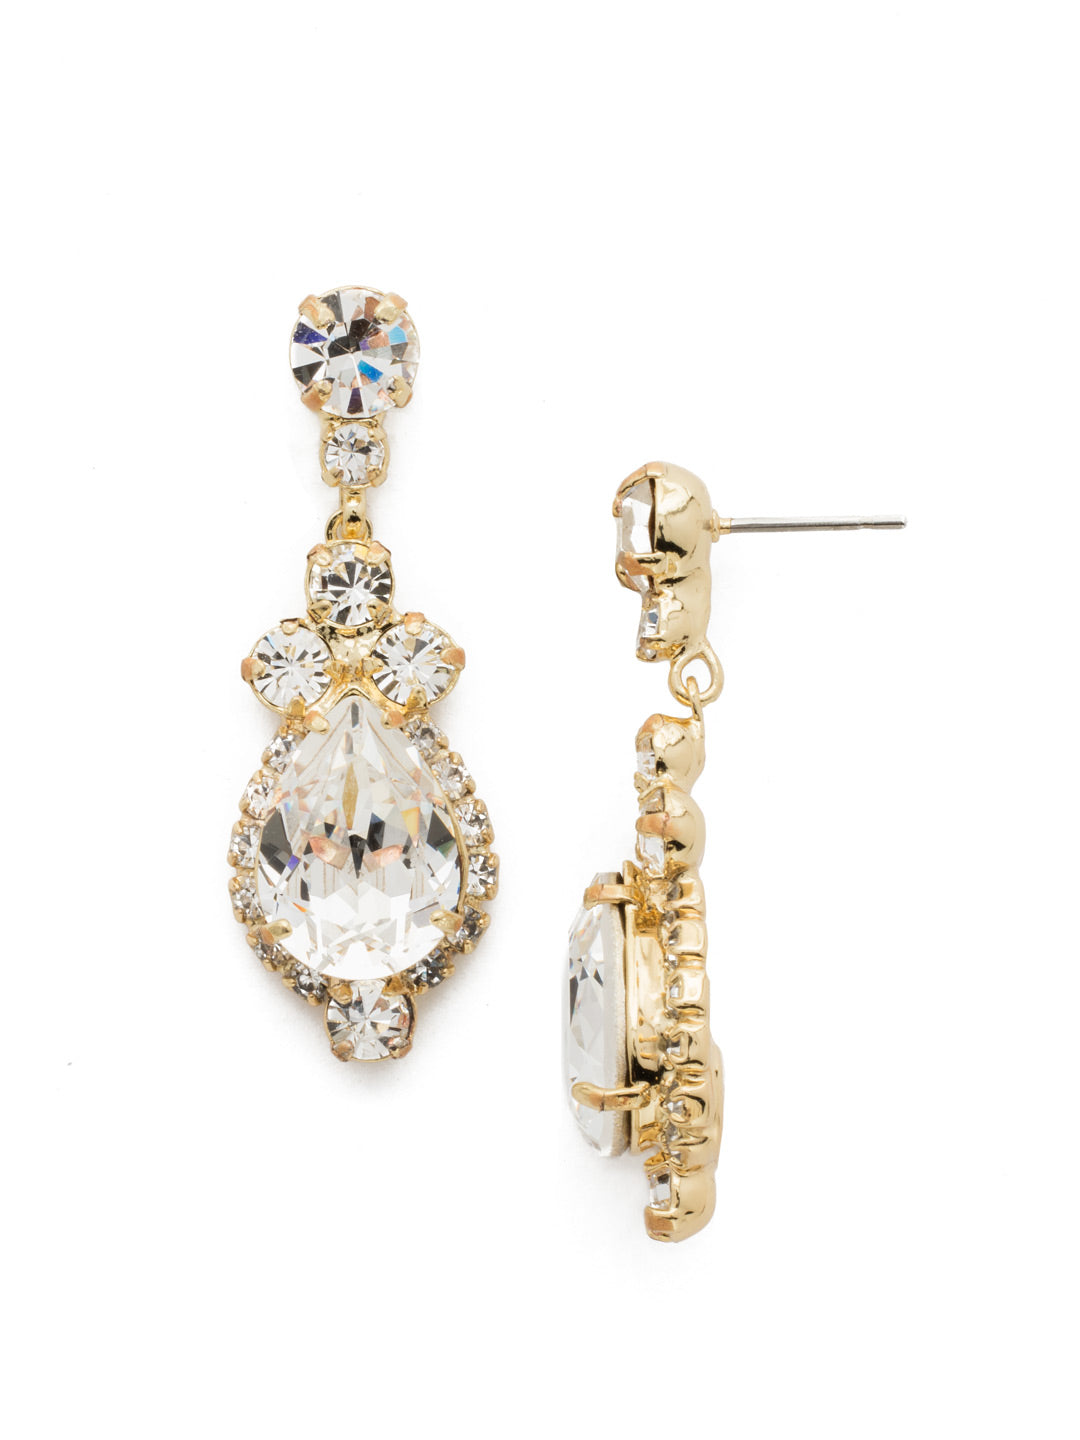 Central Teardrop and Round Crystal Post Earring - EDA55BGCRY